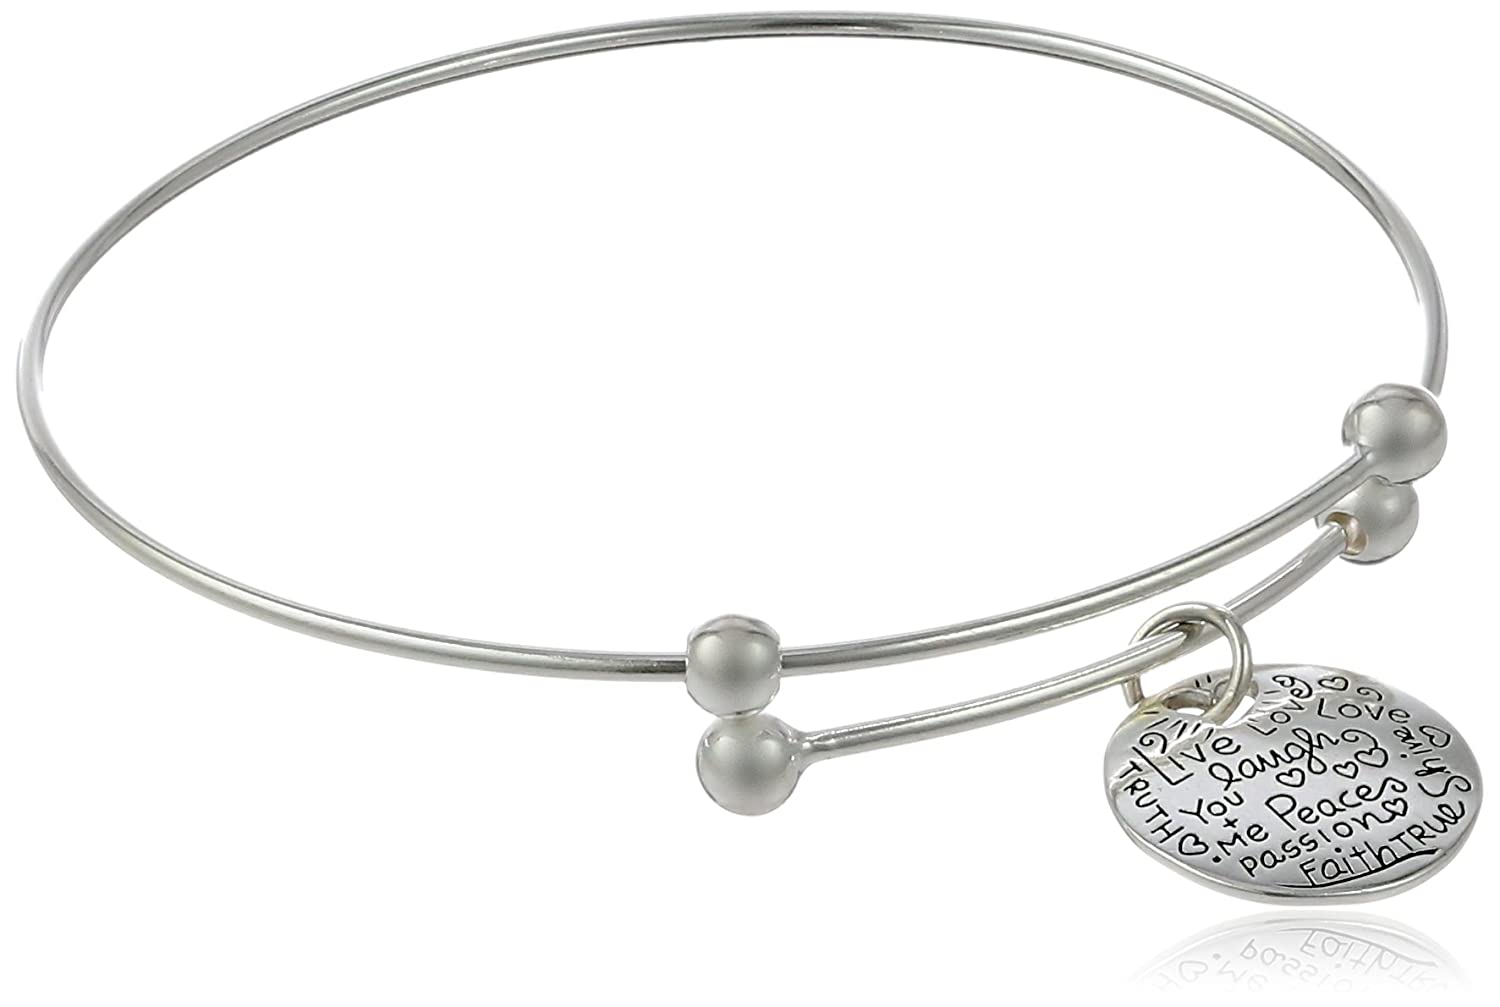 Sterling Silver AdjustableLive Laugh Love Graffiti Charm Bangle Bracelet Amazon Collection 538643